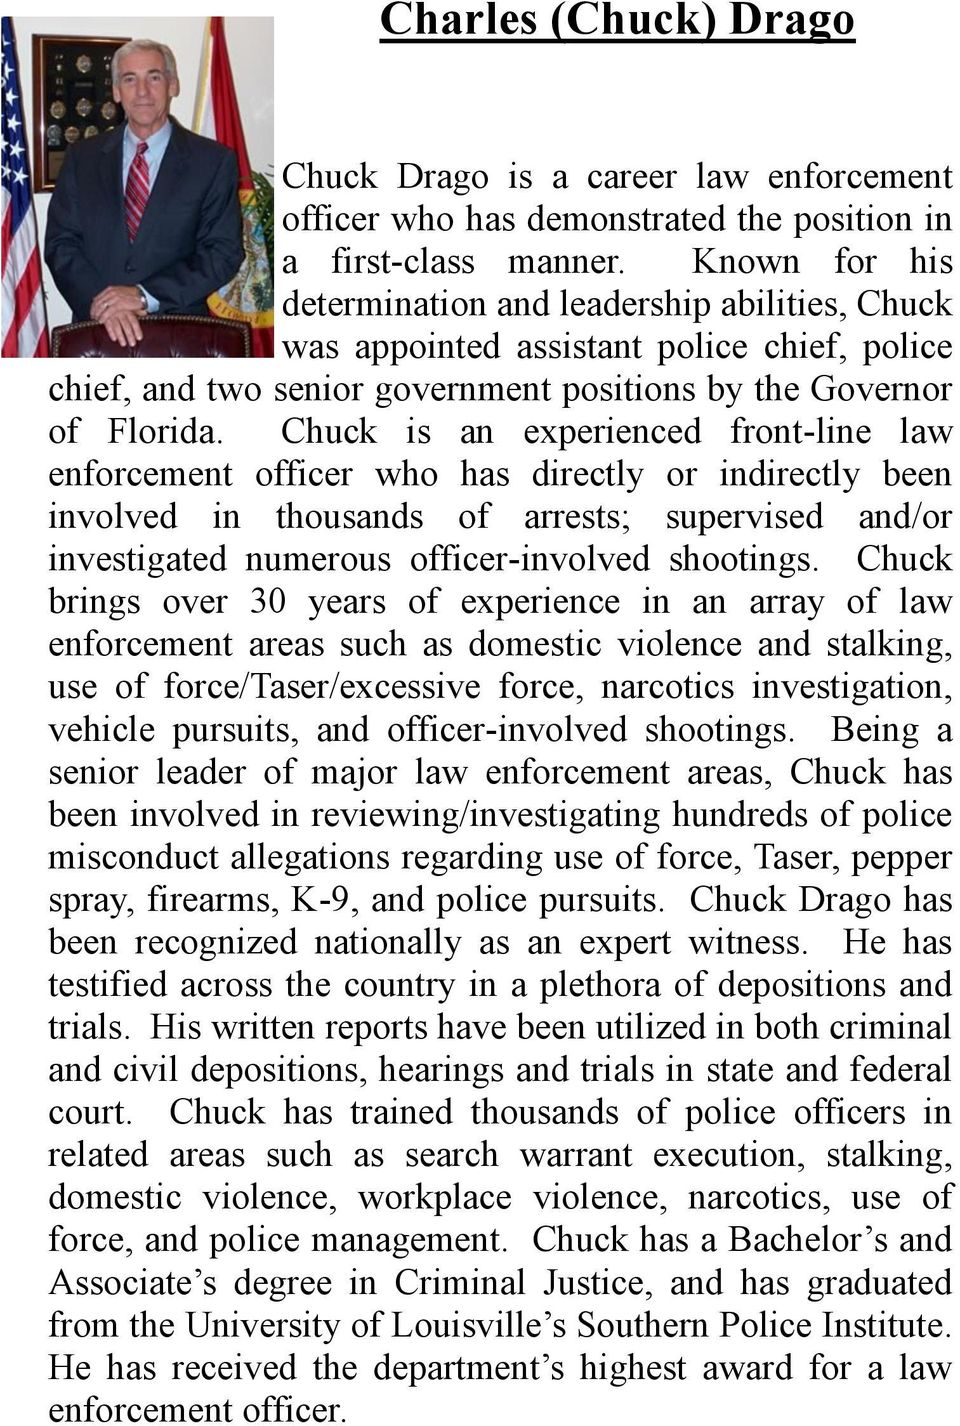 Chuck is an experienced front-line law enforcement officer who has directly or indirectly been involved in thousands of arrests; supervised and/or investigated numerous officer-involved shootings.